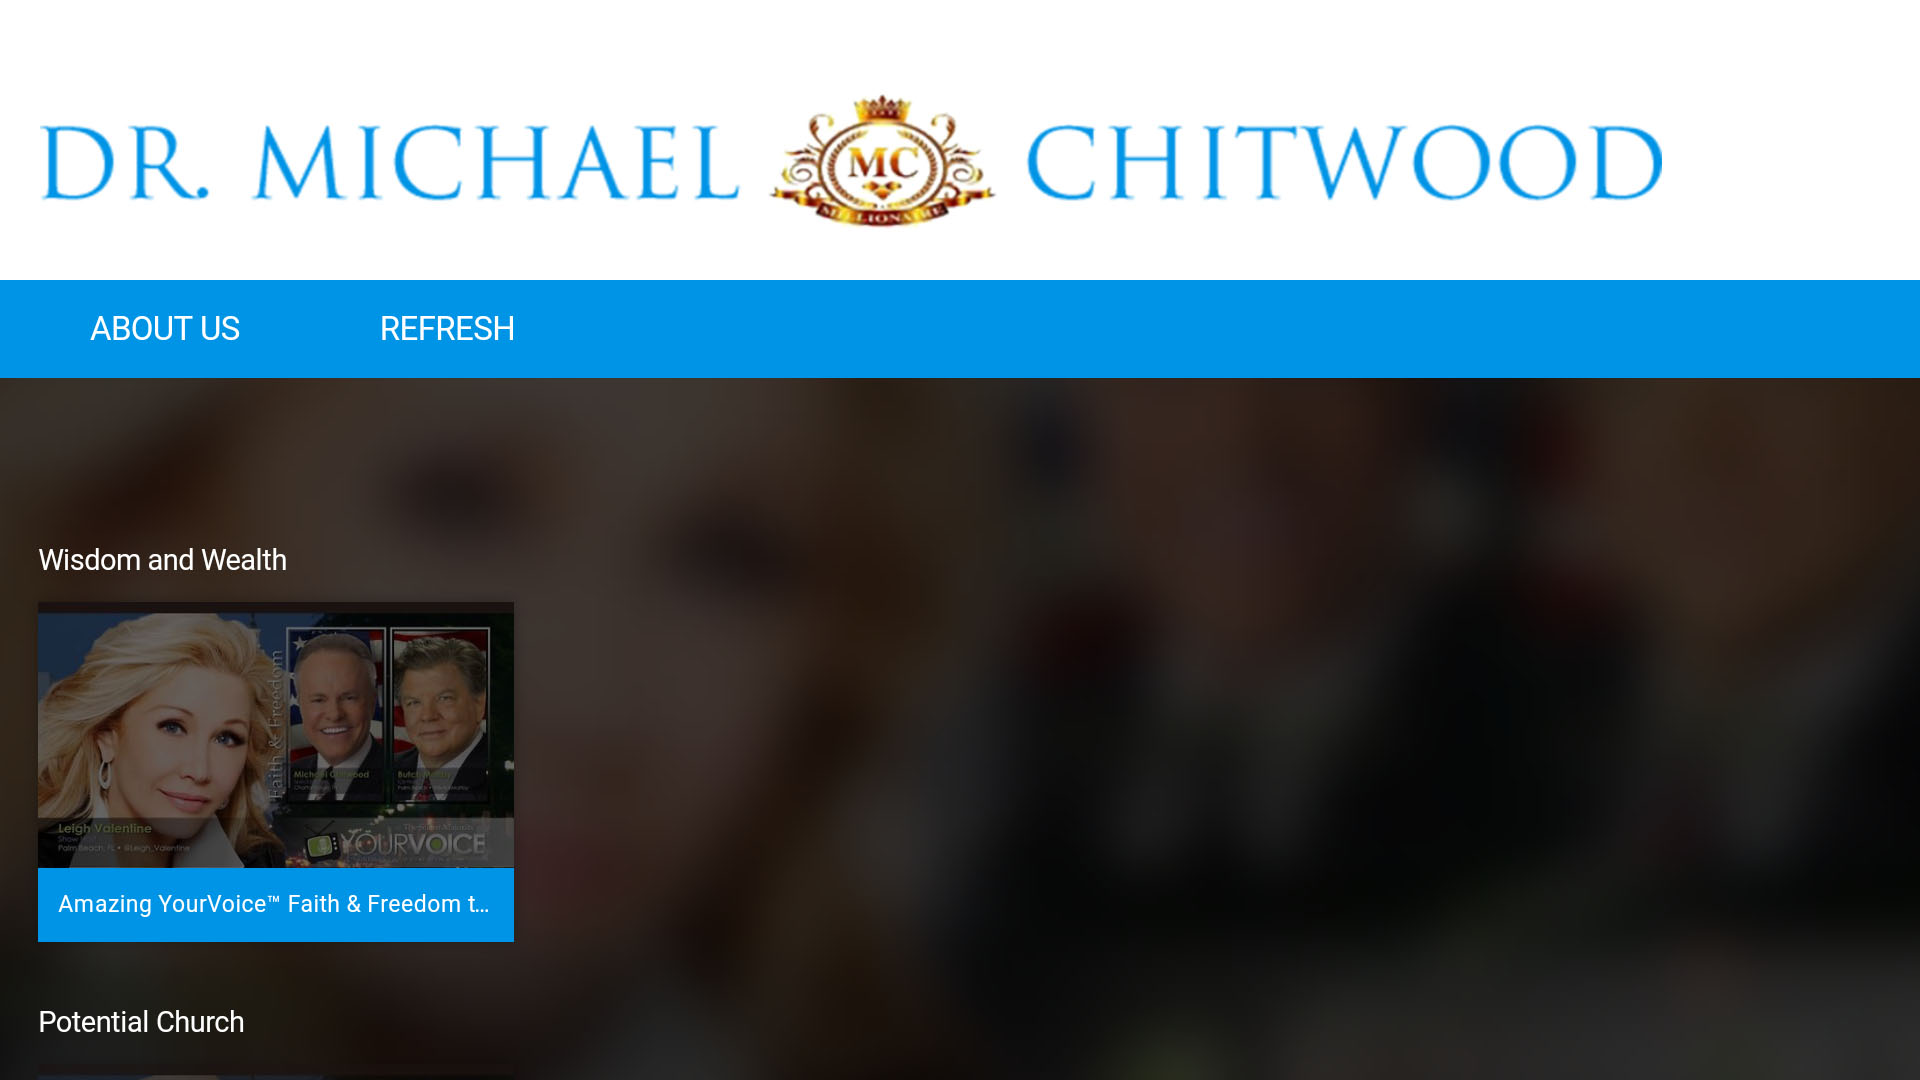 Dr. Michael Chitwood Screenshot 001